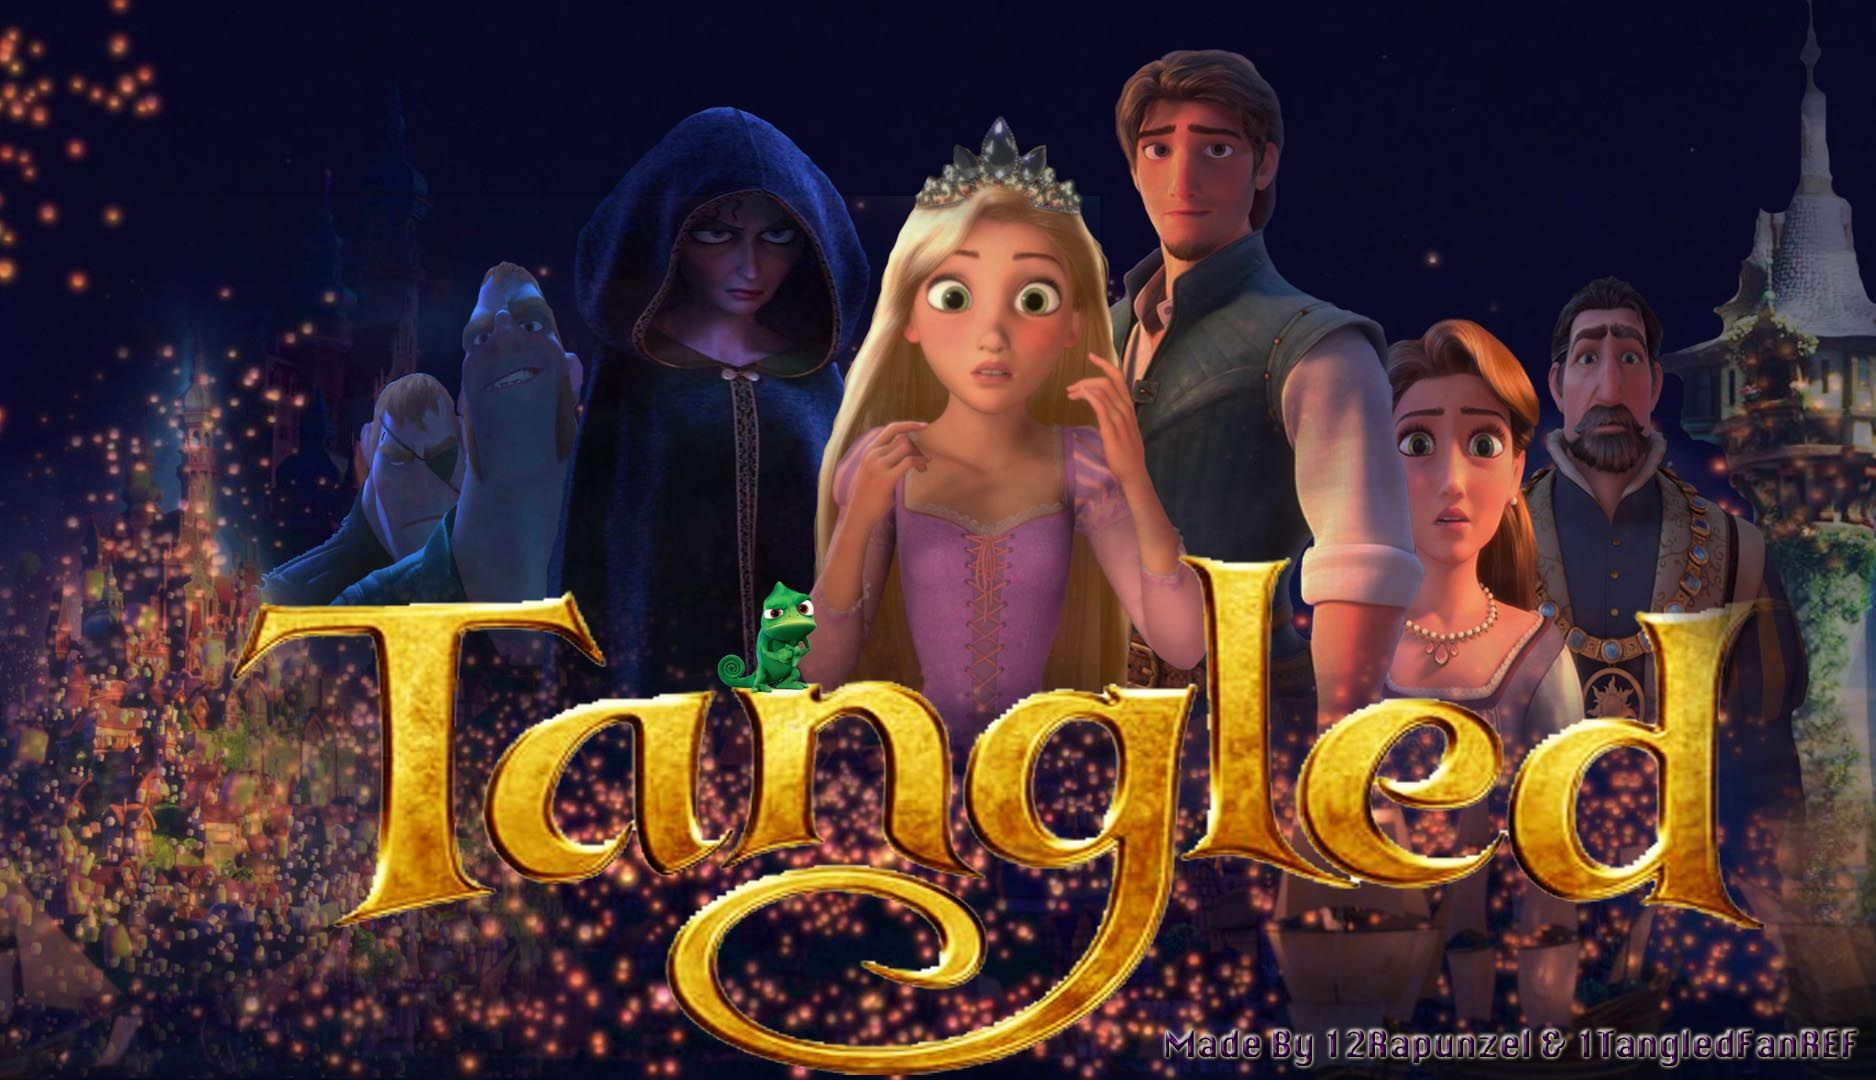 best Tangled images on Pinterest | wallpapers | Pinterest | Tangled ... for Tangled Wallpaper Rapunzel And Flynn  585hul